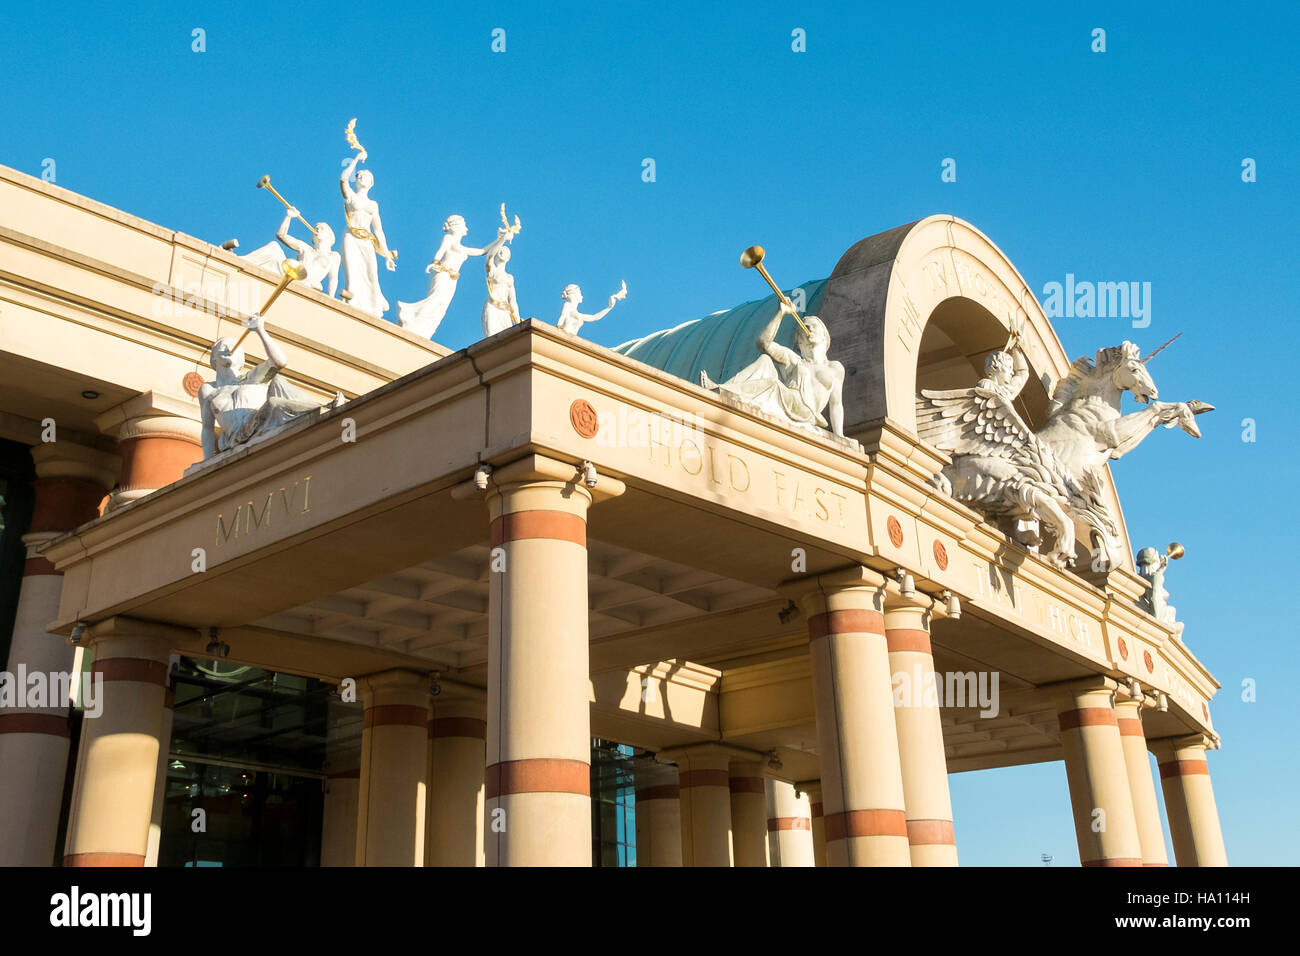 Exterior of INTU The Trafford Centre which is the largest shopping centre in the UK and the first 'mega mall', - Stock Image